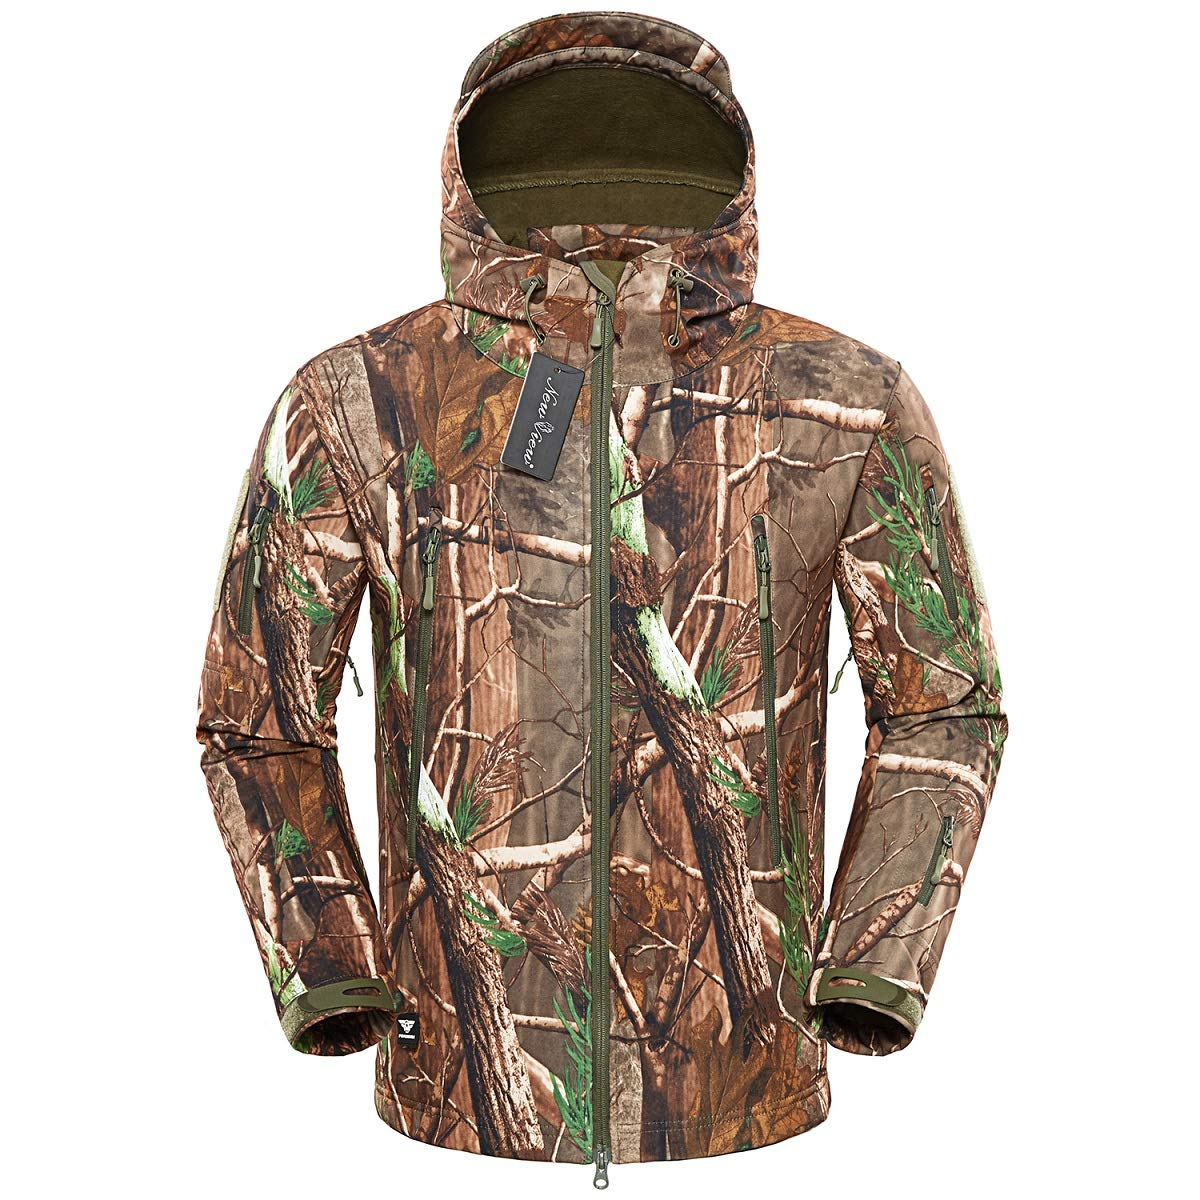 NEW VIEW Hunting Jackets Waterproof Hunting Camouflage Hoodie for Man Camo Jackets and Tactical Camouflage Pants (Jacket-7, US XL=Tag XXL) by NEW VIEW